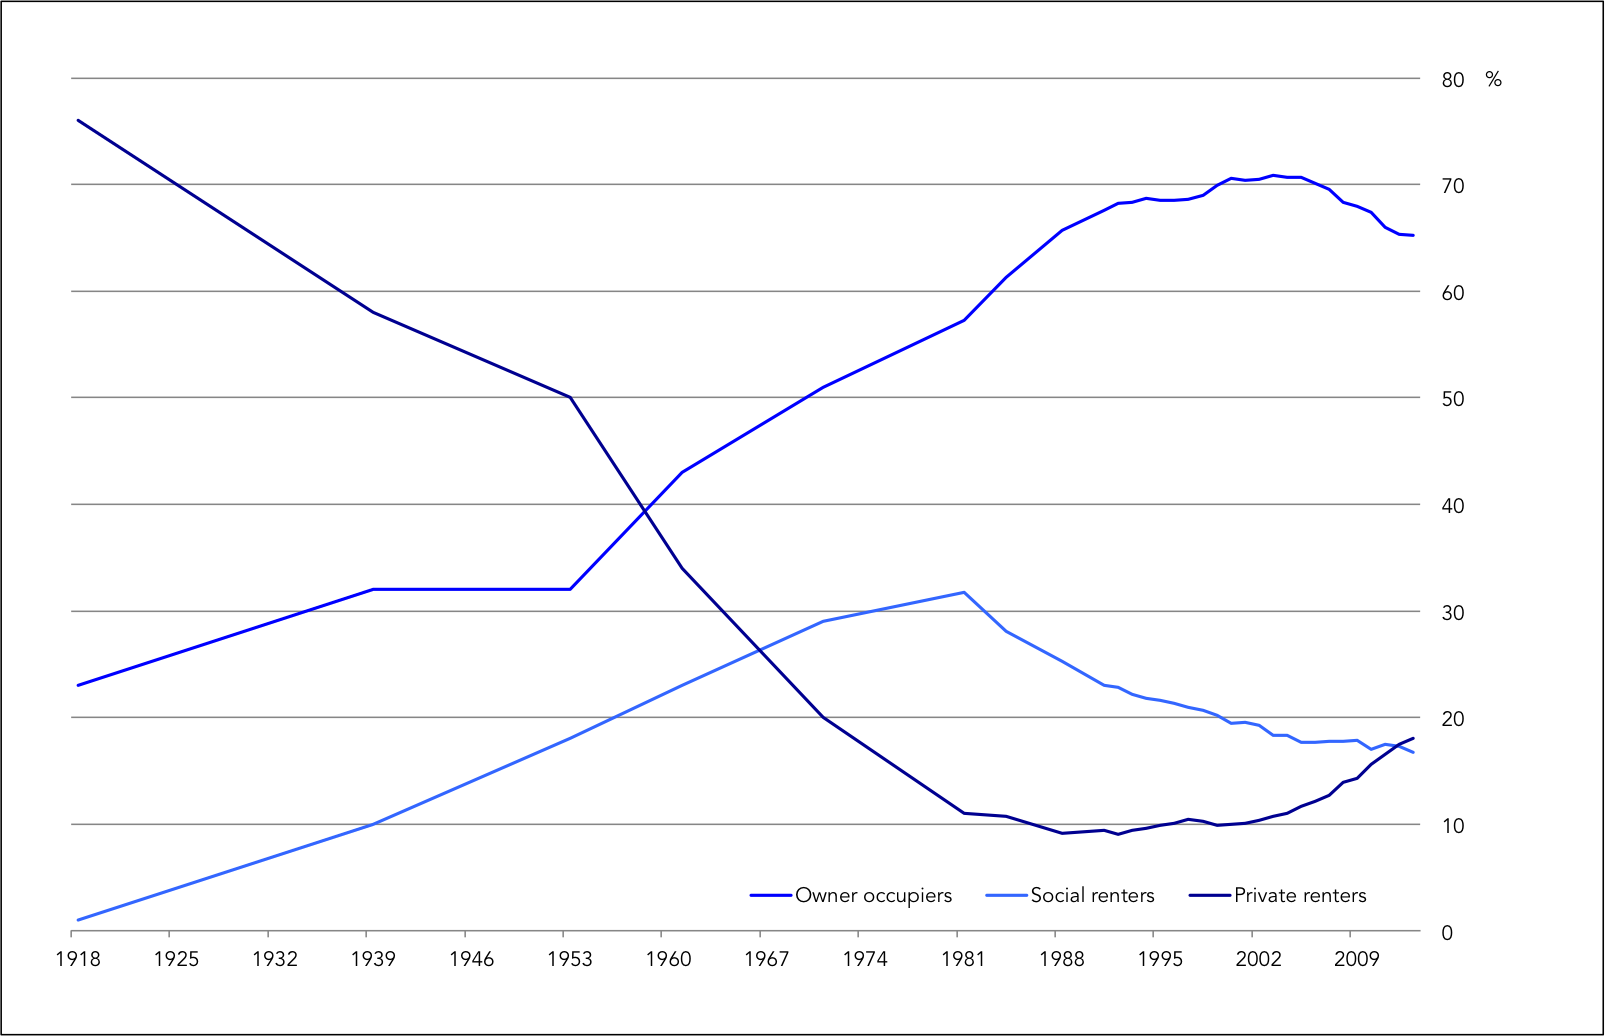 Historical Housing Tenure of England & Wales